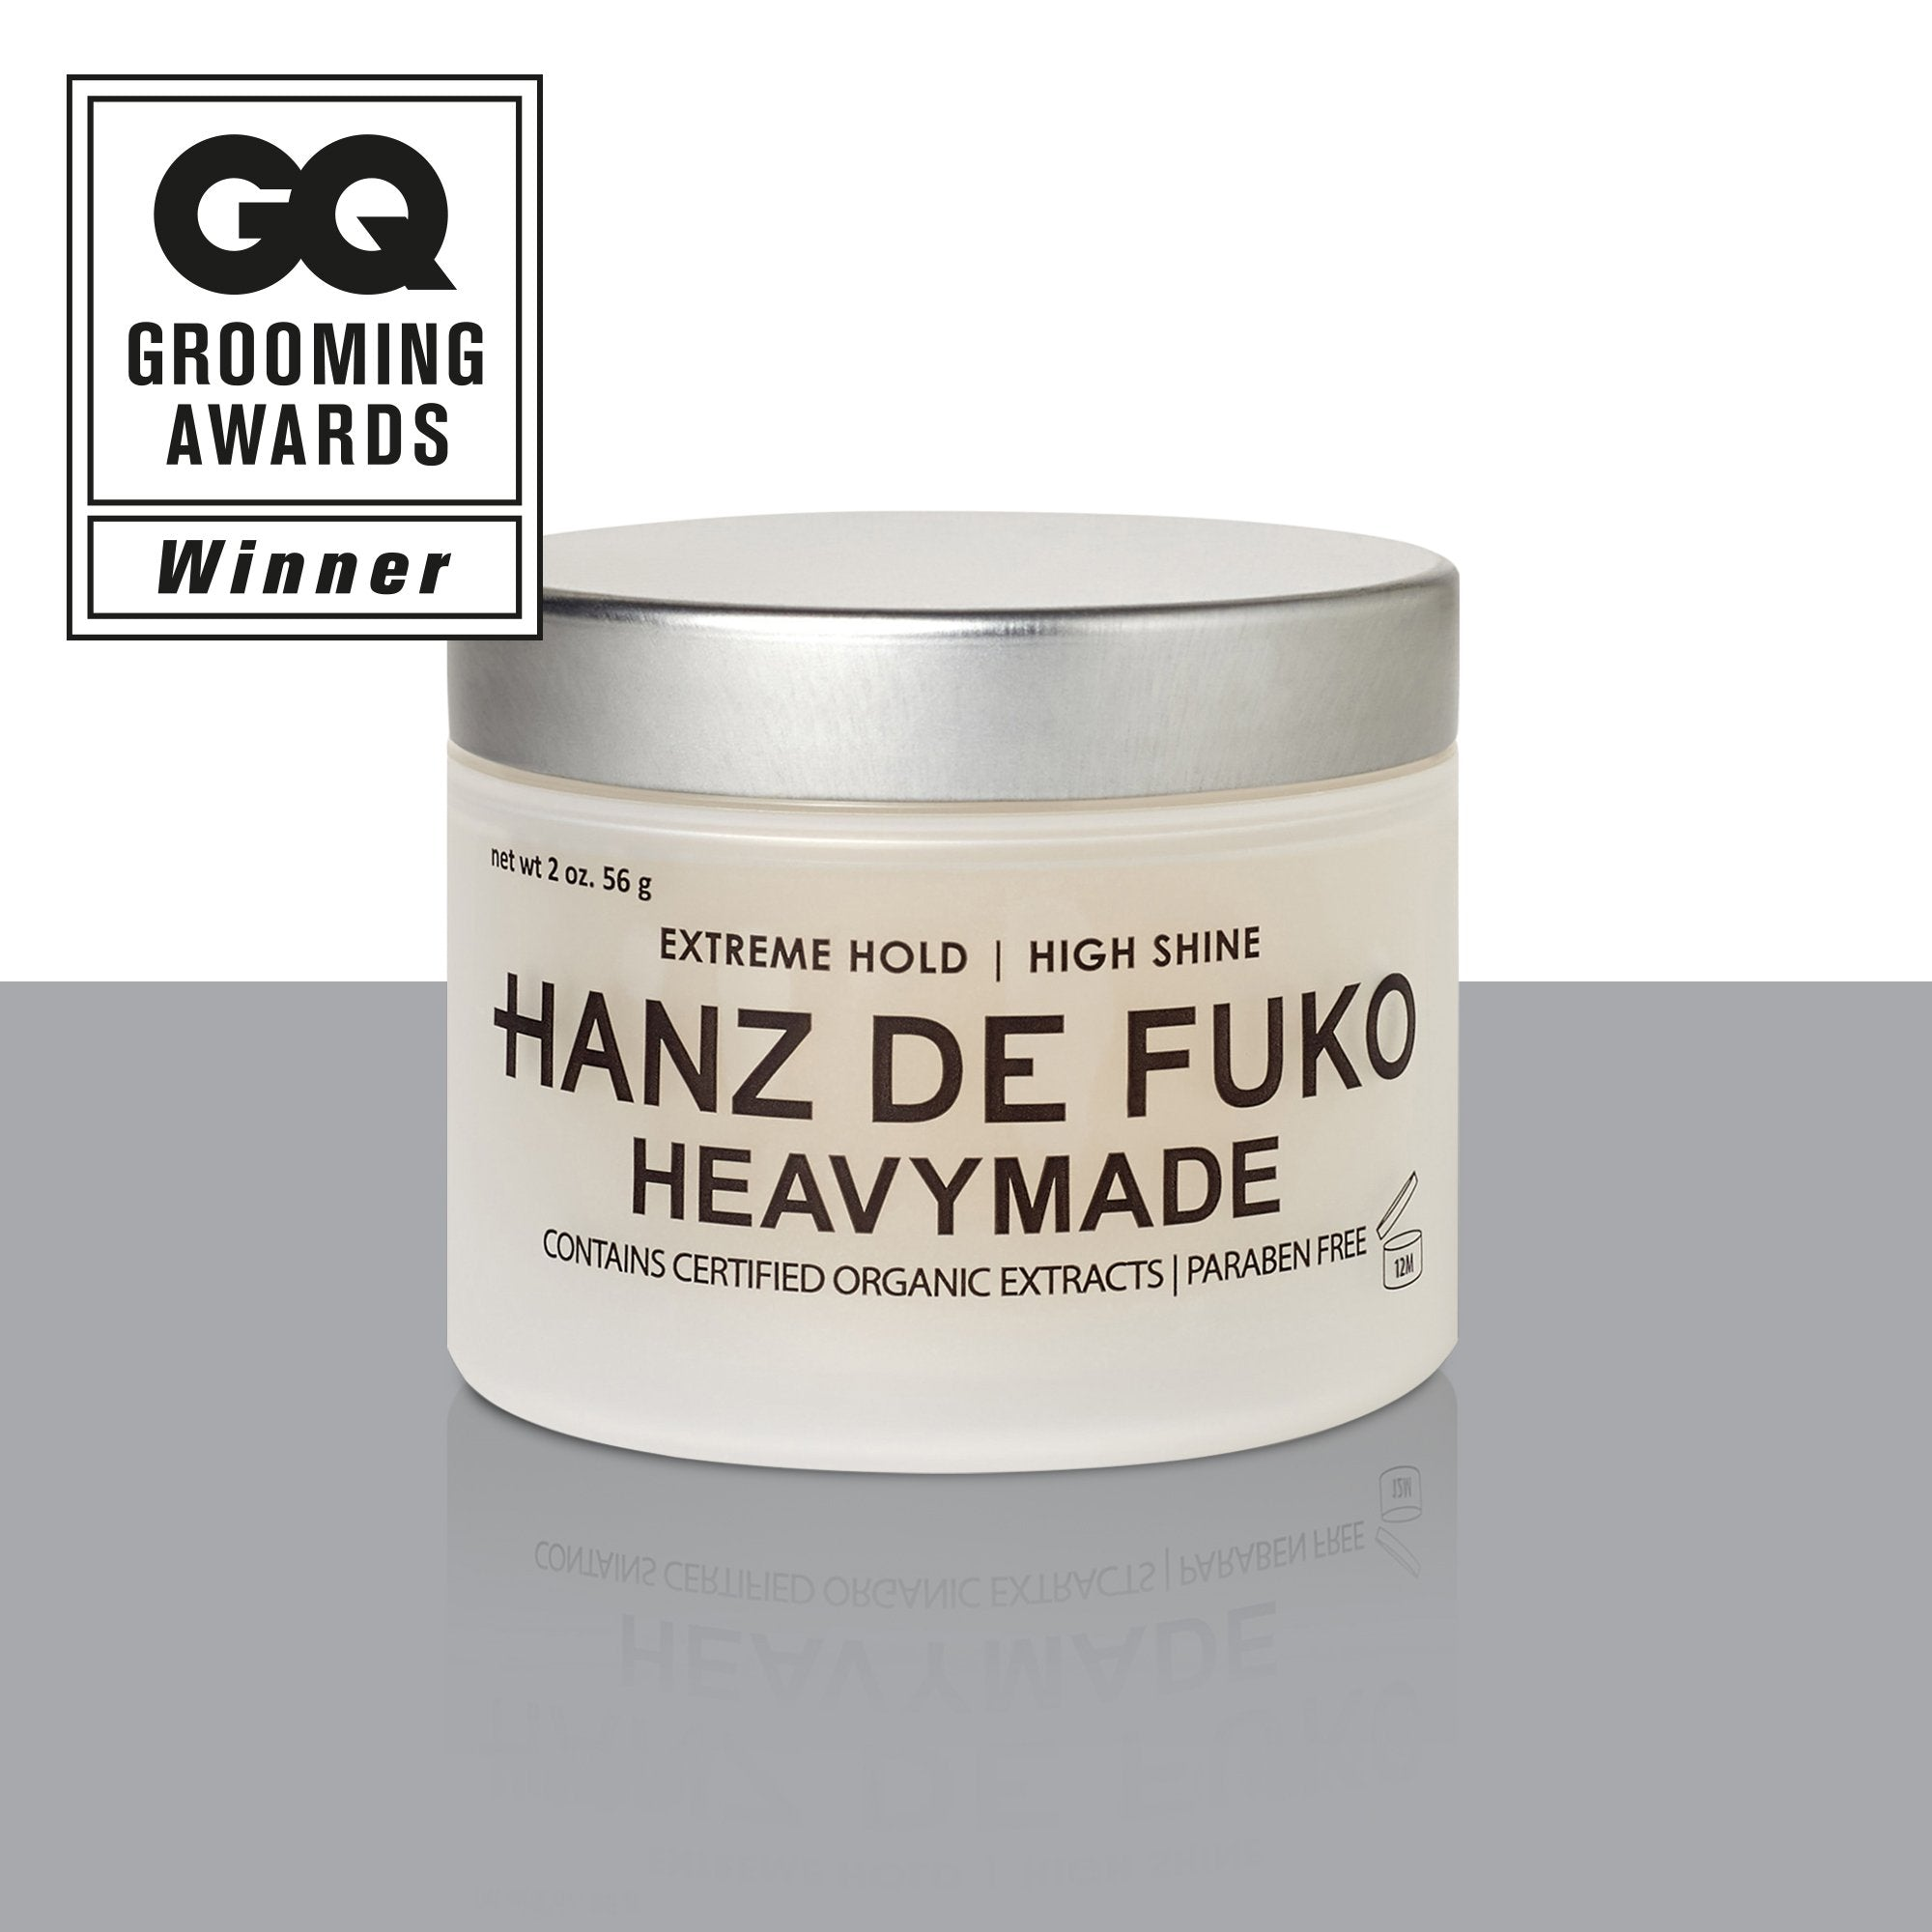 Hanz de Fuko Heavymade - Cream of the Crop Pte Ltd